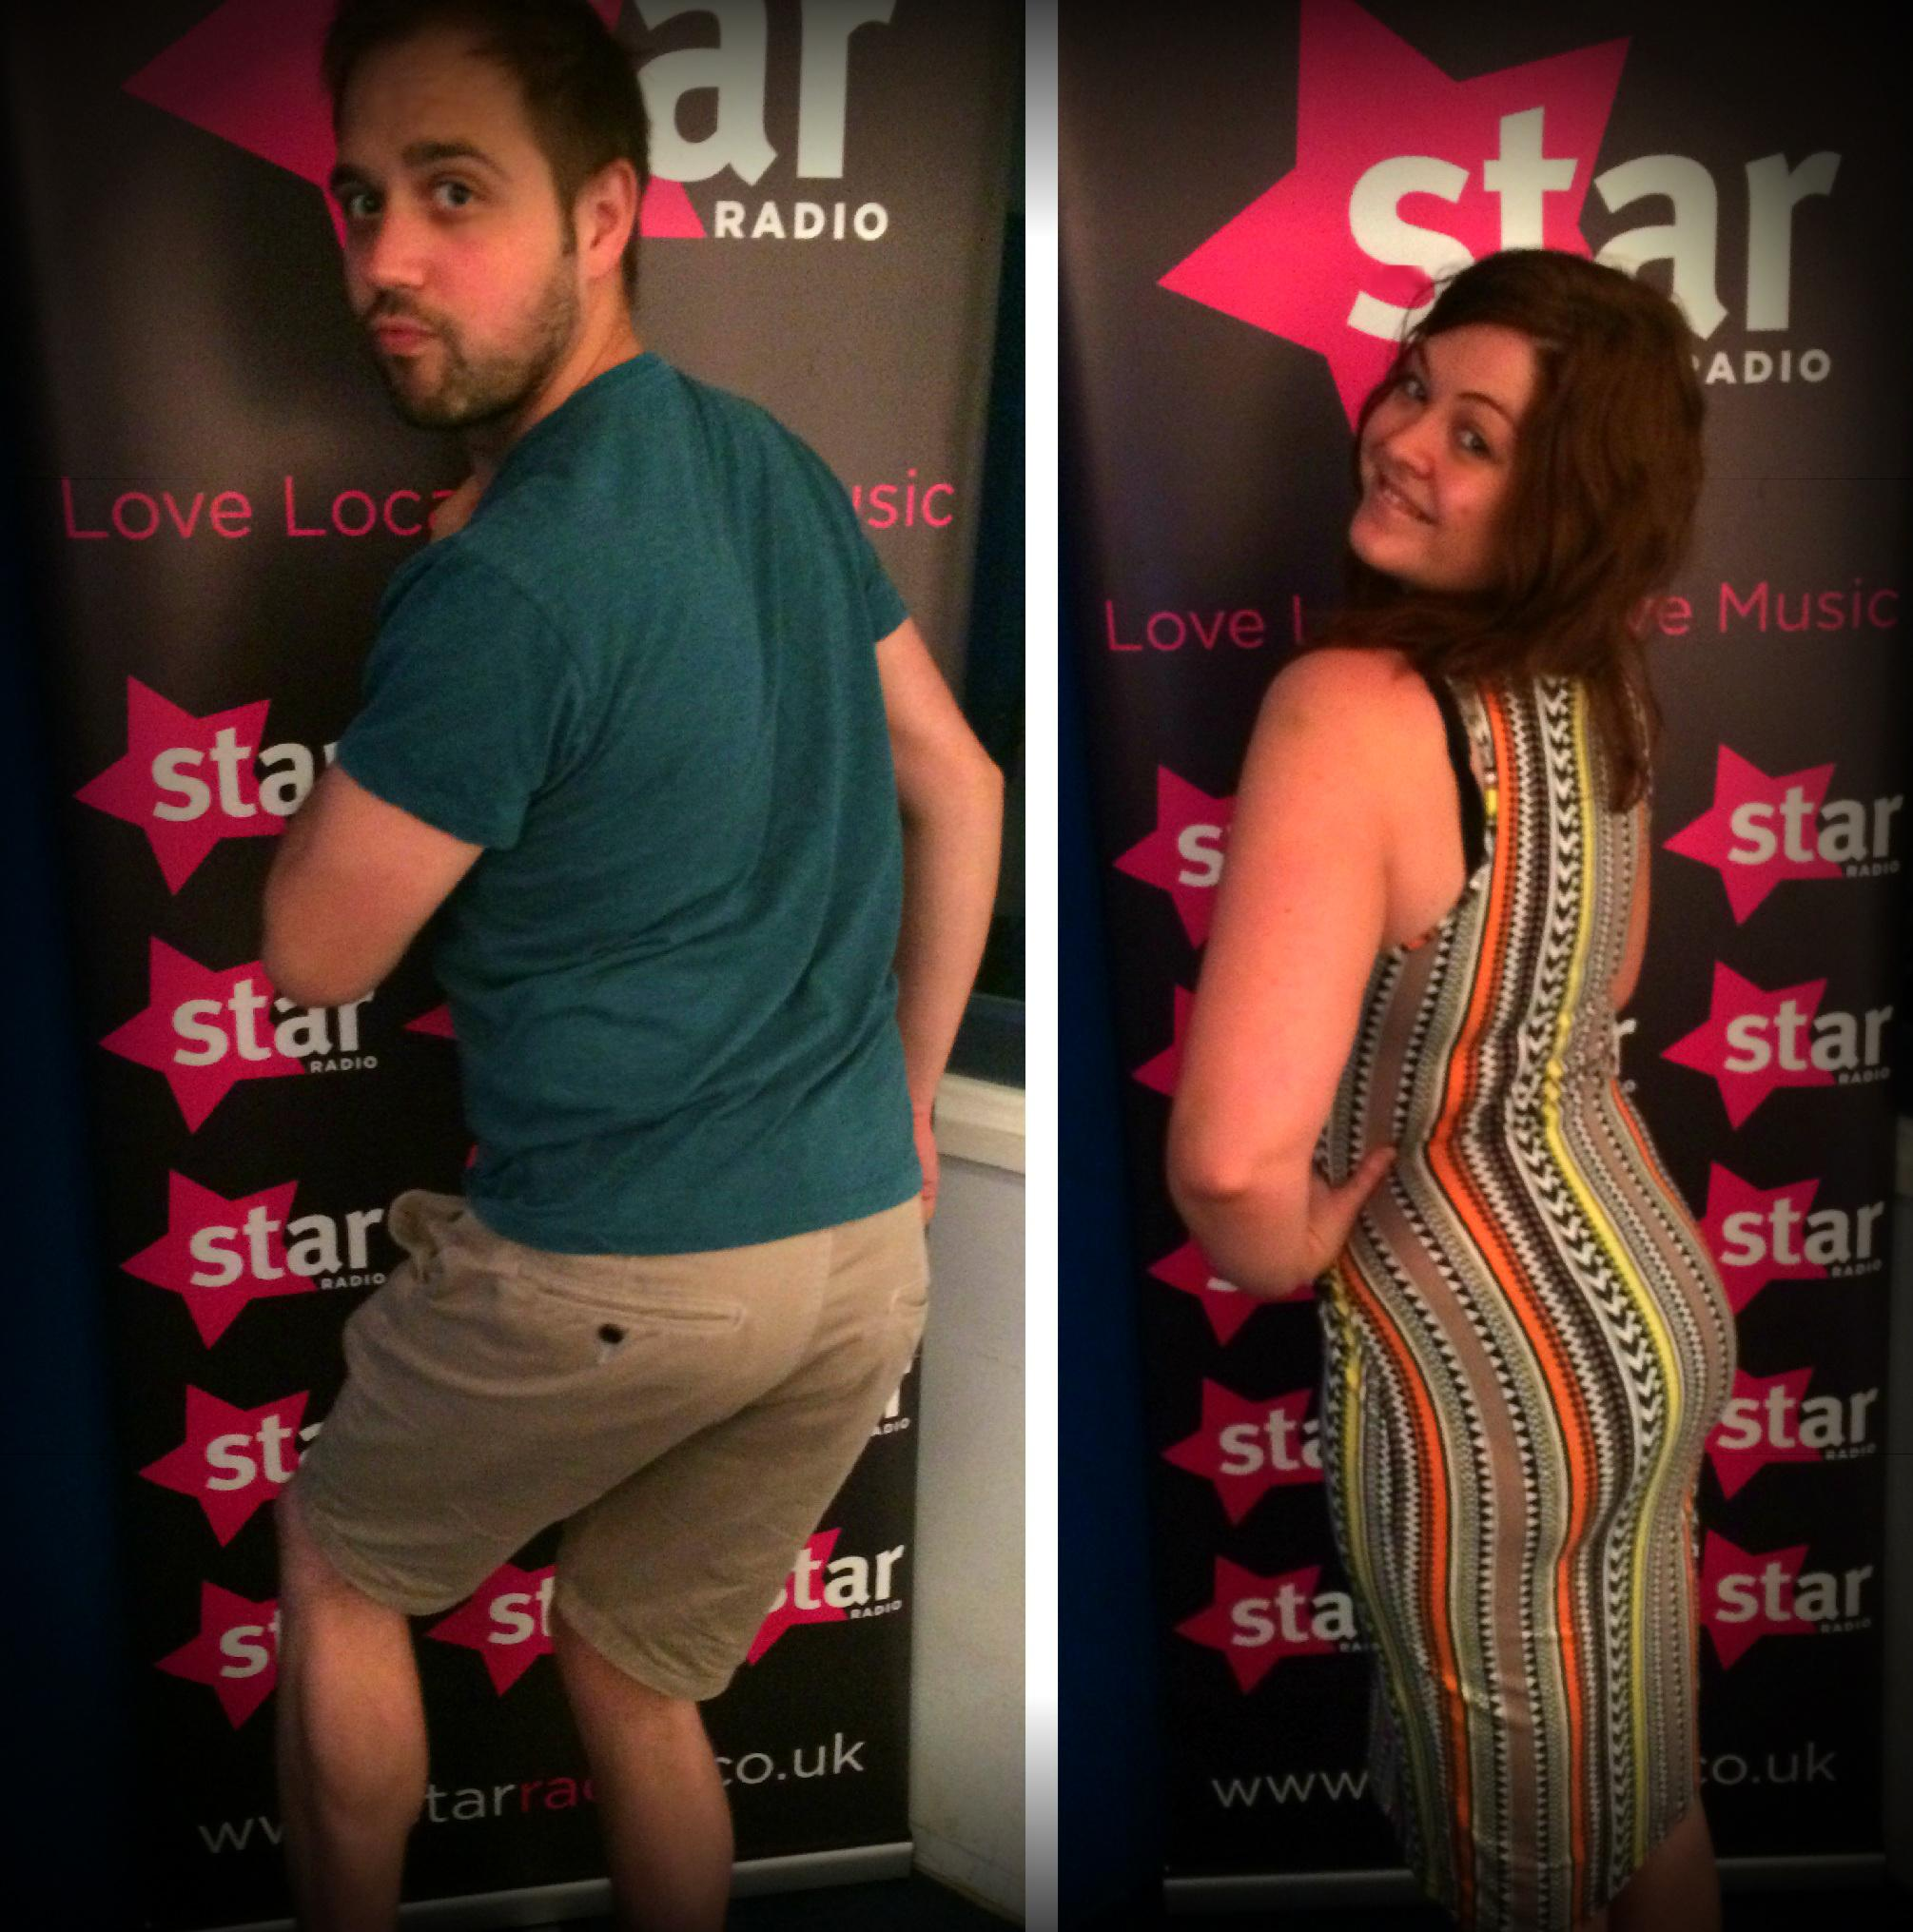 RT @thisisstarradio: Rear of the Year winners are @carolvorders & @ollyofficial, but who wins between @timlichfield & @RuthRAiken?! #vote h…